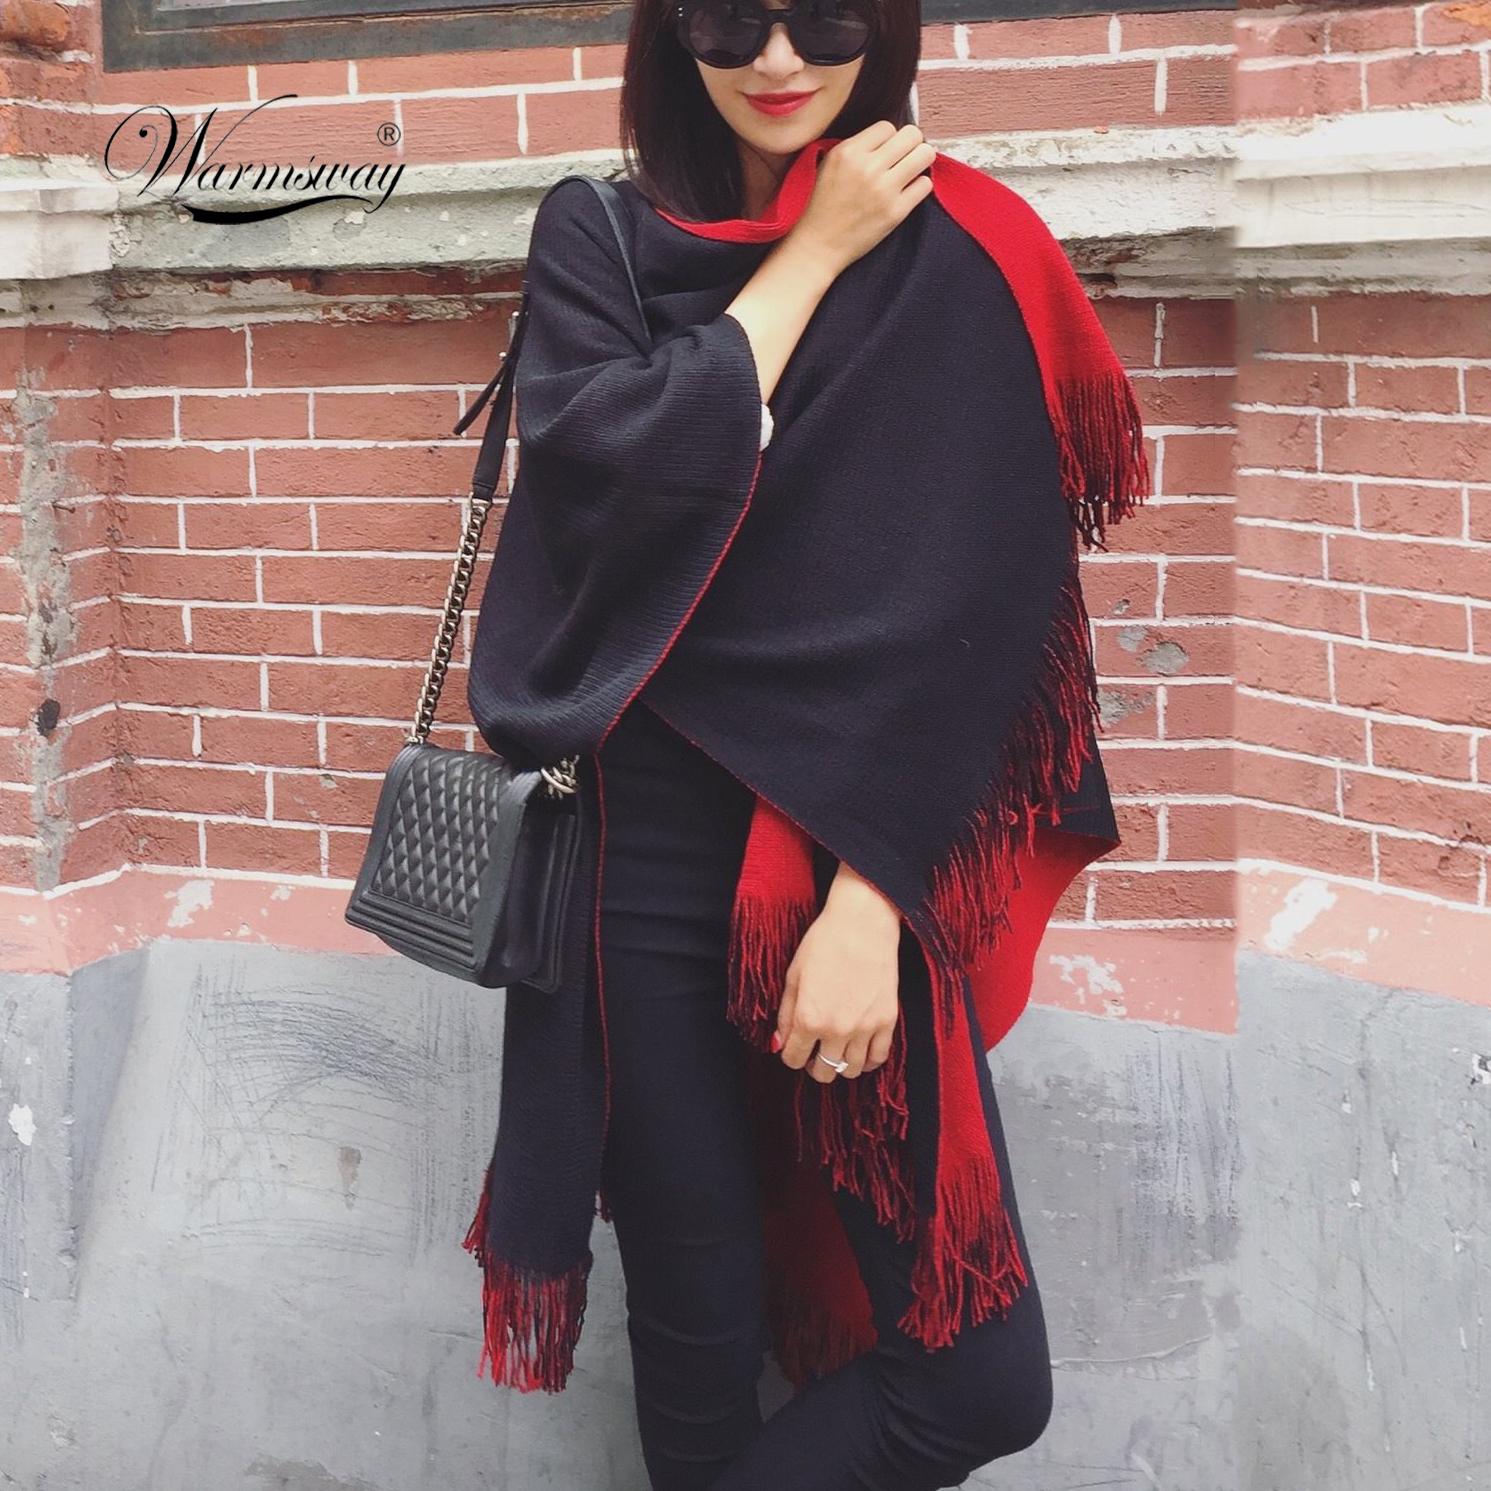 US $14 98 30% OFF|Quality guarantee Oversized Reversible reversed Women  Winter Knitted Cashmere Poncho Capes Shawl Cardigans Sweater Coat C 008-in